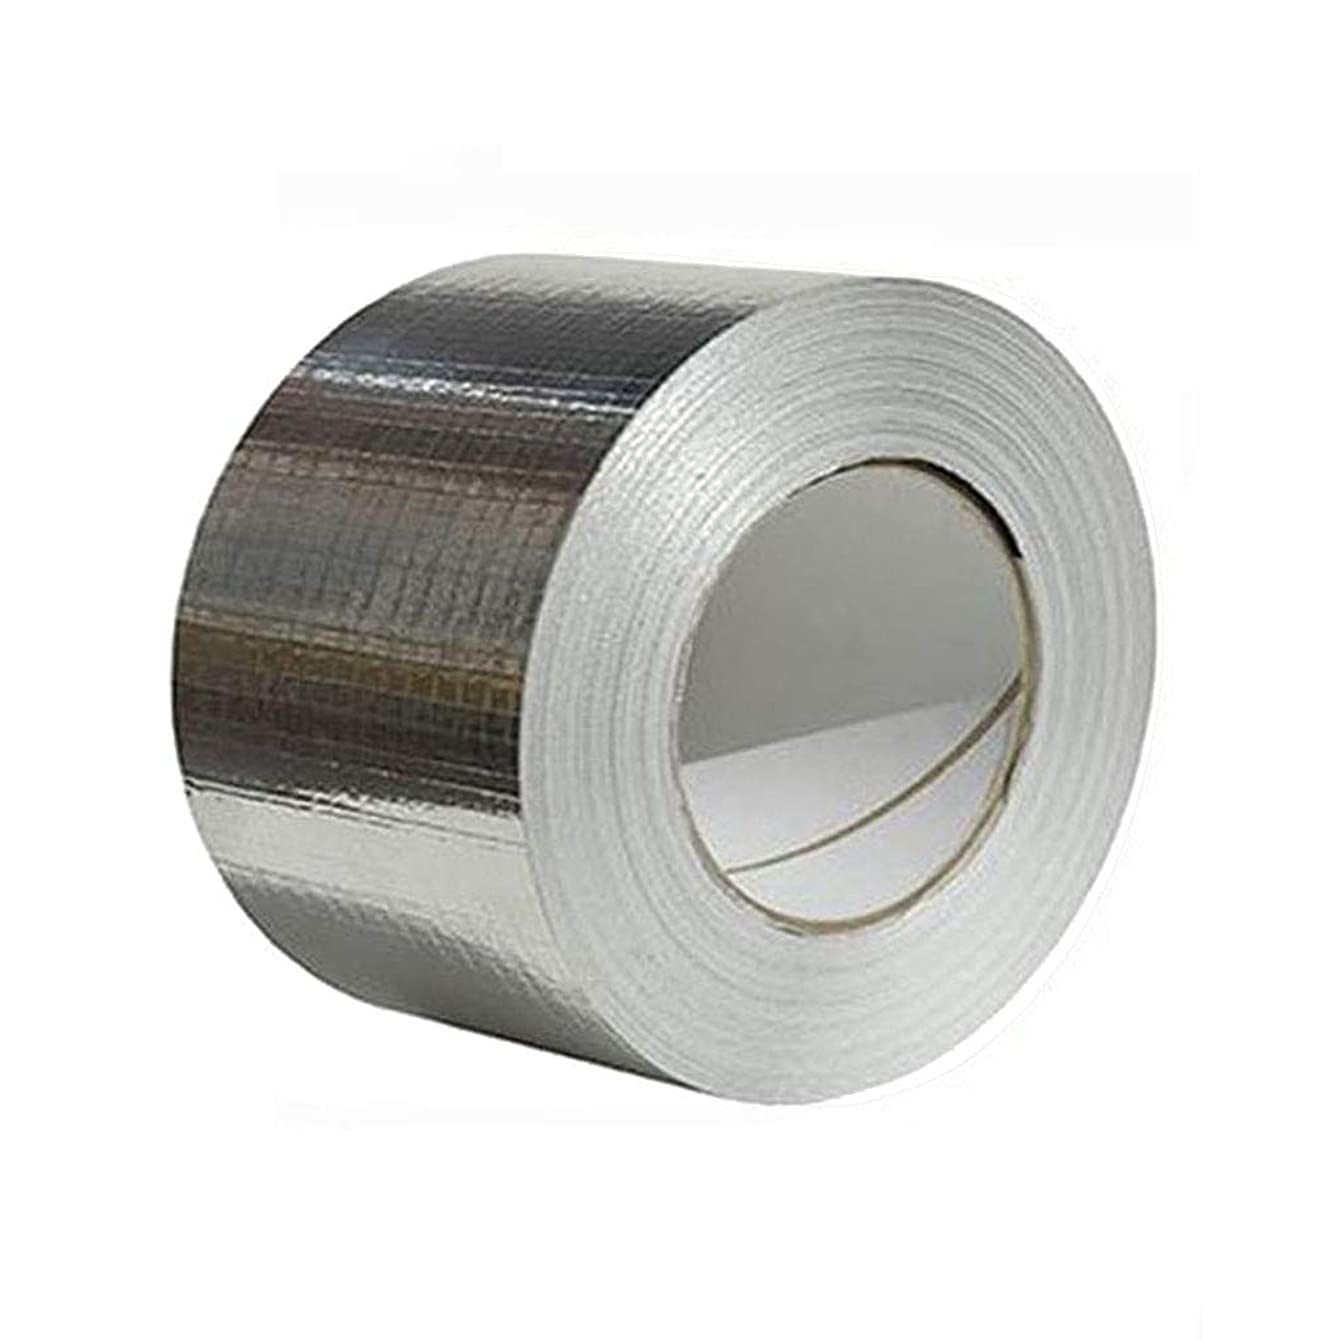 Hongxin The Aluminium Foil Tape, Waterproof & UV Resistant Cost-Effective Glass Tape,Floor Roof Window,A:5cm x 5m / B:10cm x 5m / C:15cm x 5m (A)